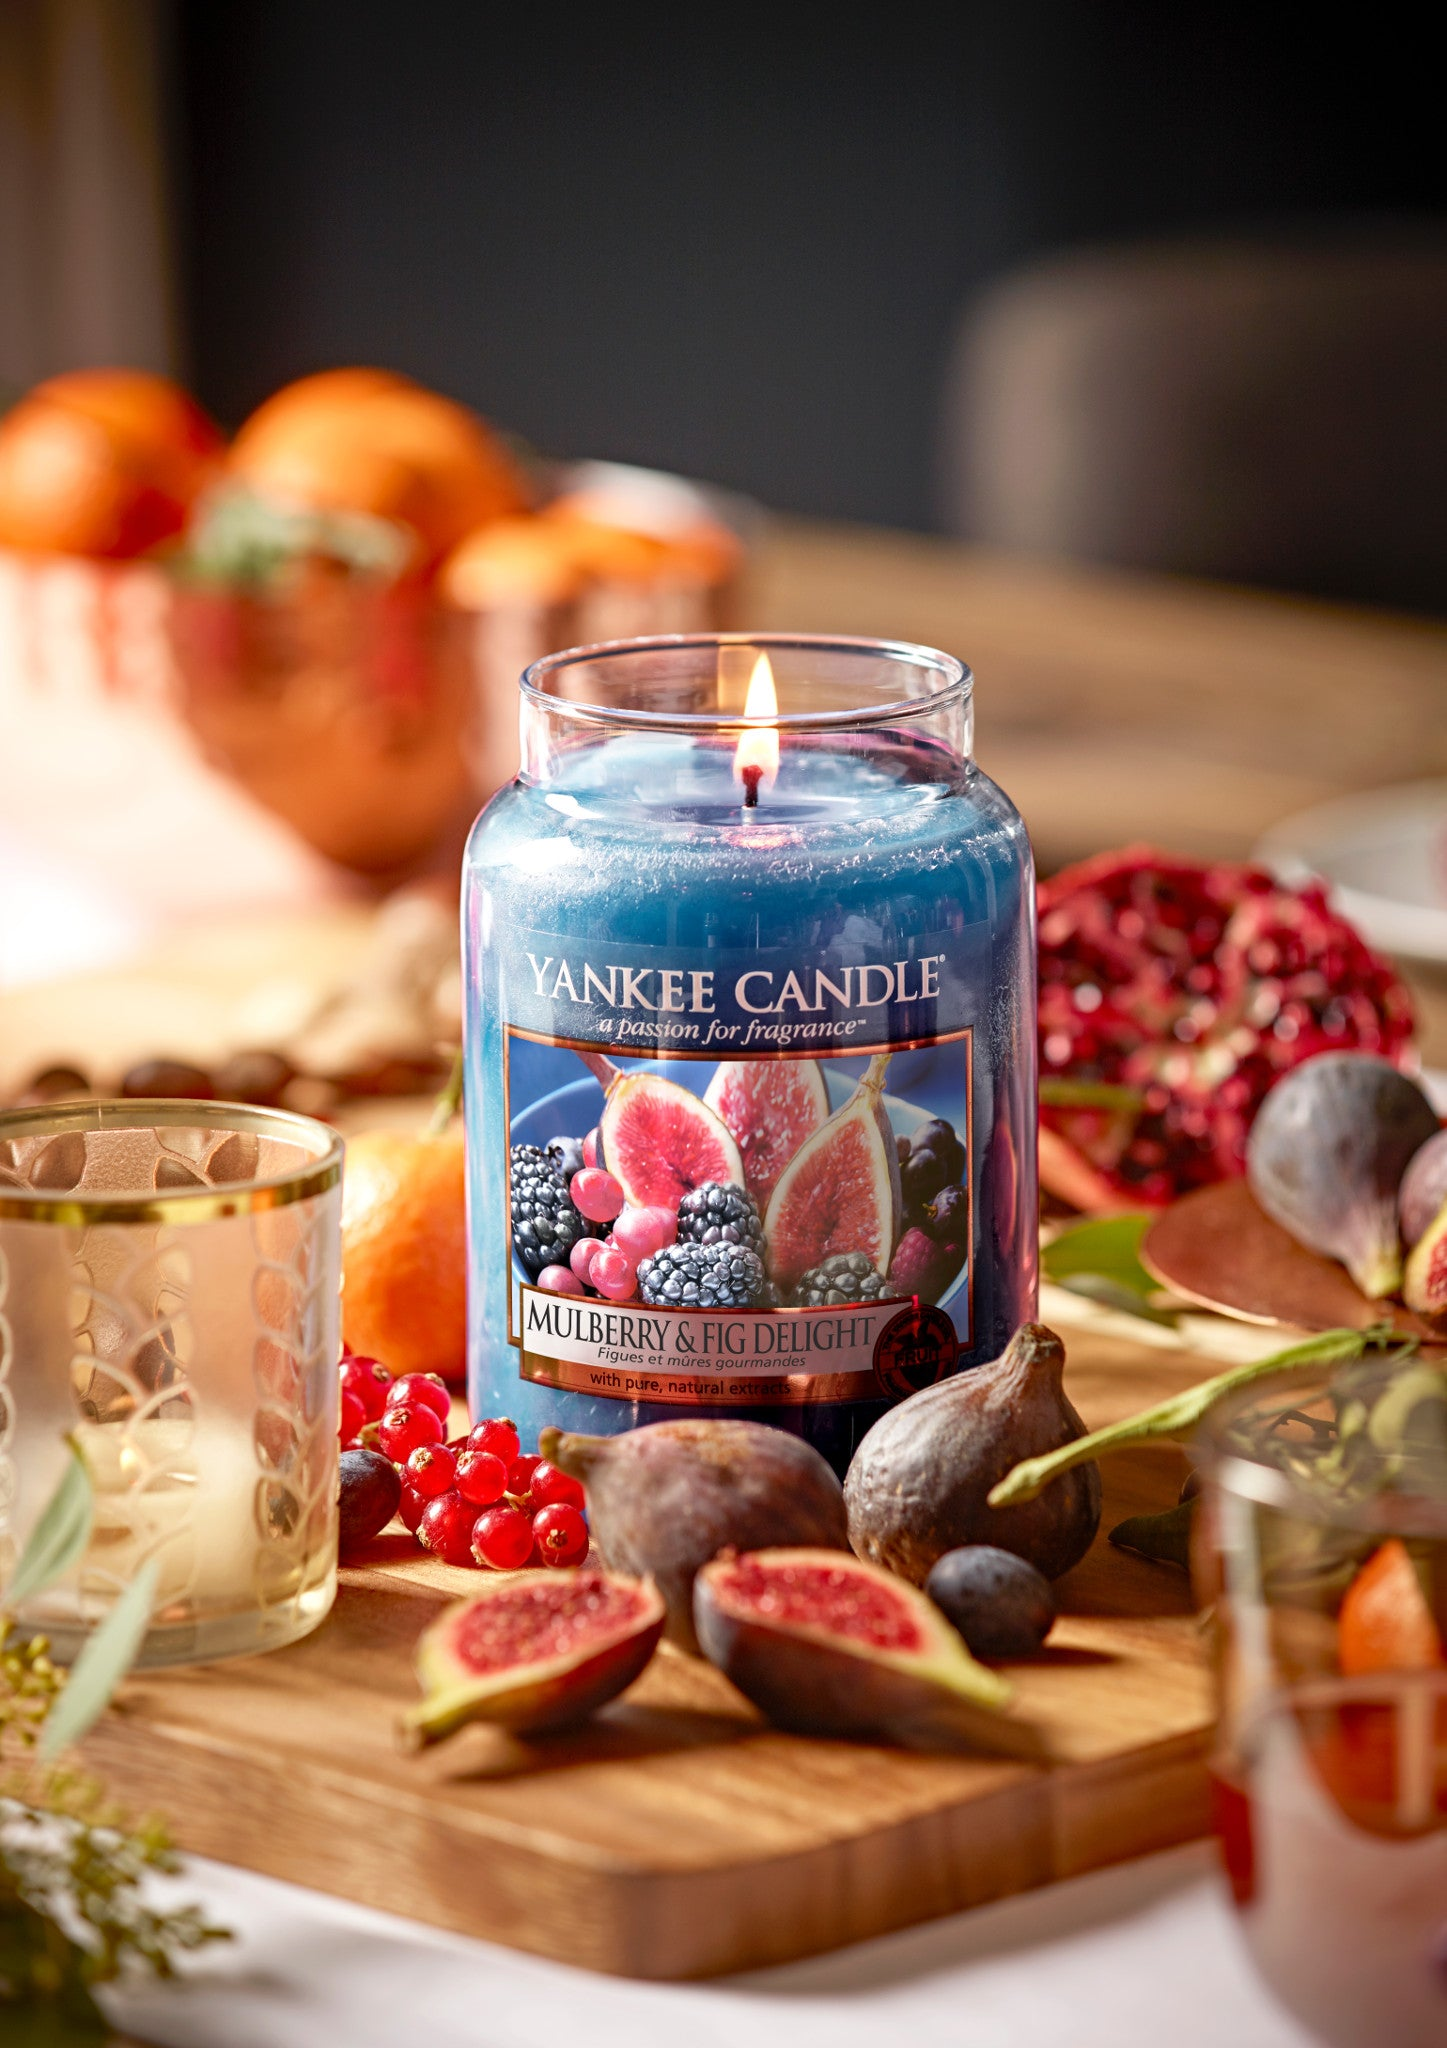 MULBERRY & FIG DELIGHT -Yankee Candle- Giara Piccola